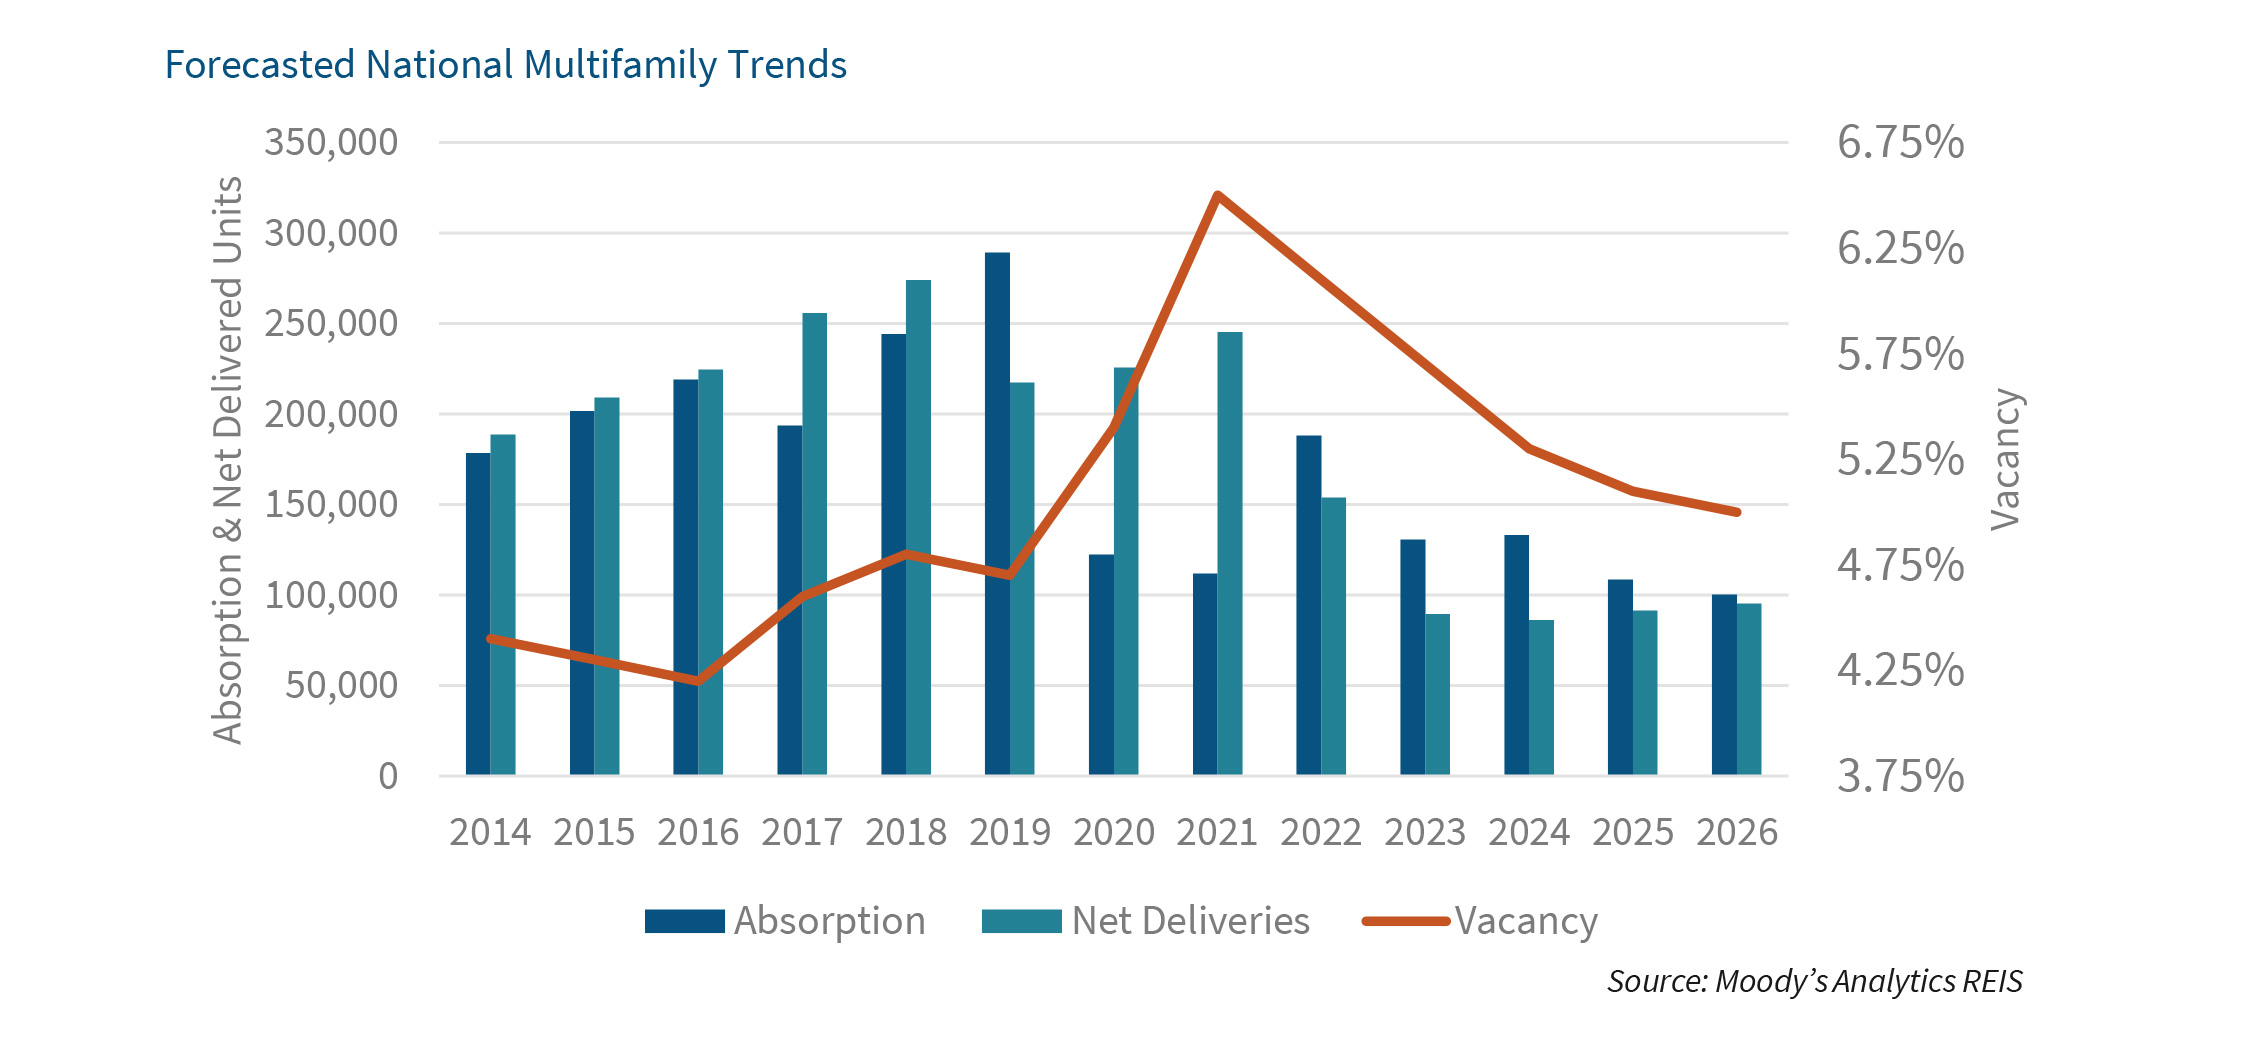 Forecasted National Multifamily Trends